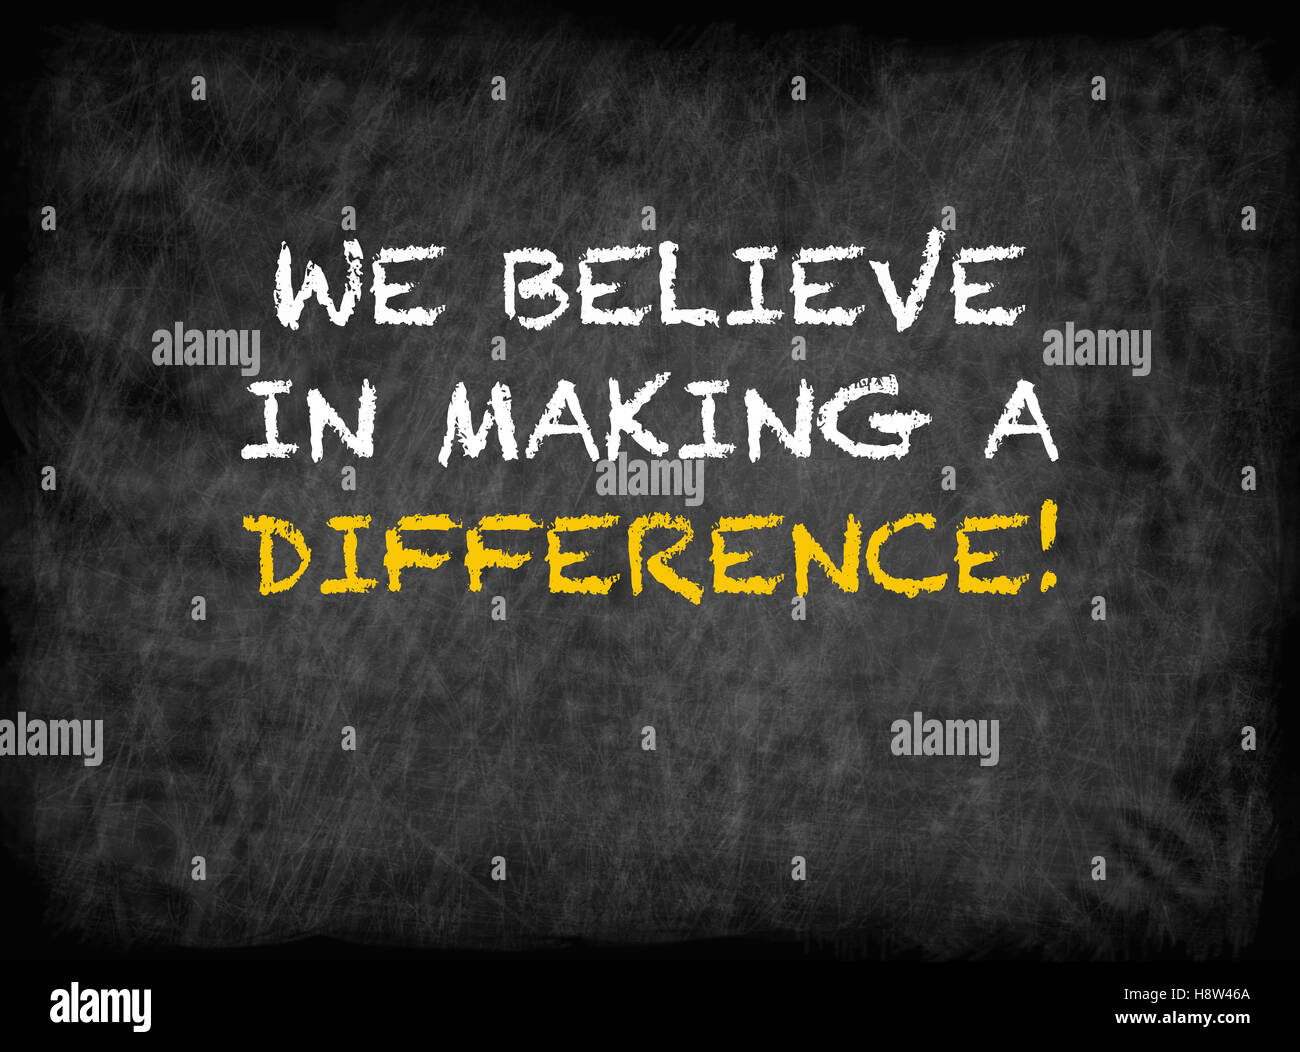 We believe in making a difference - text on chalkboard - Stock Image